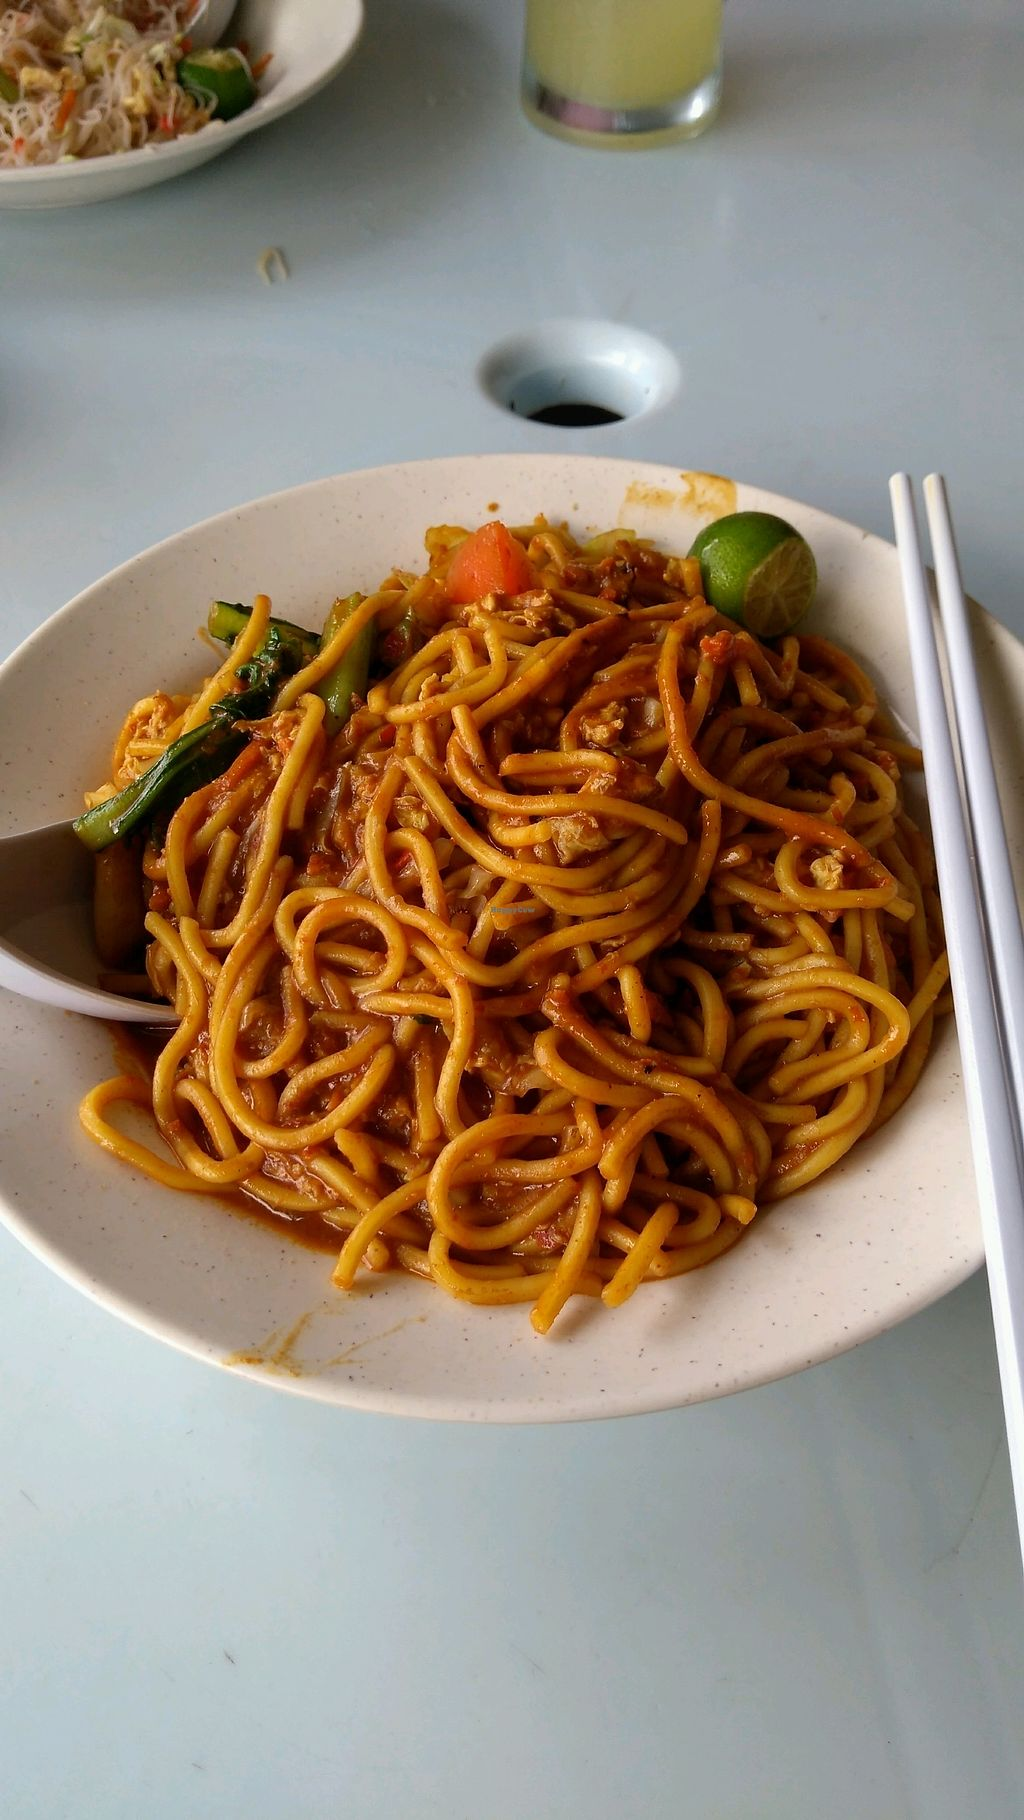 """Photo of Chow's Family Vegetarian Restaurant  by <a href=""""/members/profile/mixo7978"""">mixo7978</a> <br/>Mee Goreng <br/> February 4, 2018  - <a href='/contact/abuse/image/9332/354649'>Report</a>"""